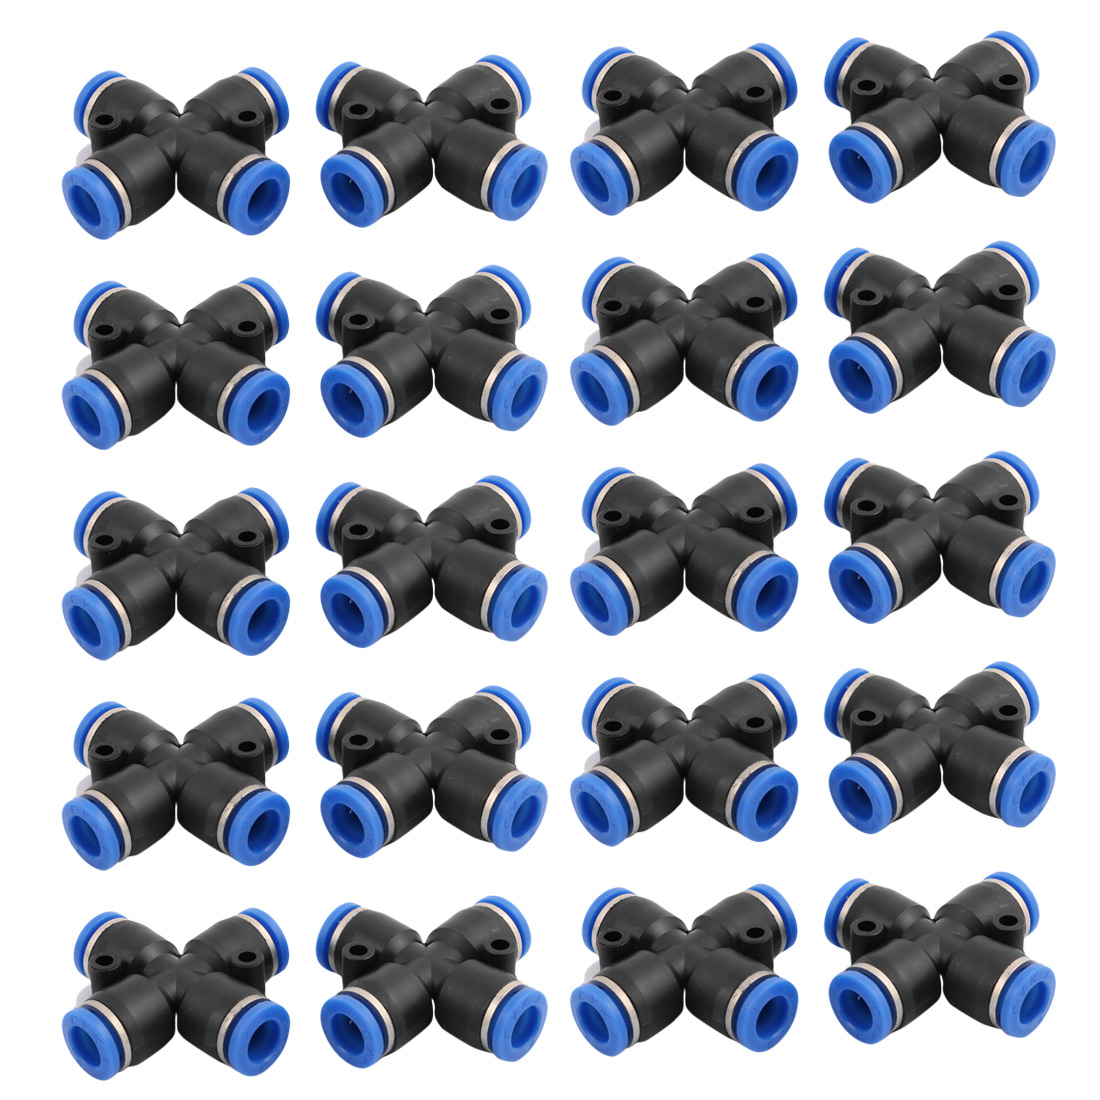 20Pcs 8mm Dia 4 Ways Tube Hose Pneumatic Air Quick Fitting Push In Connector Black